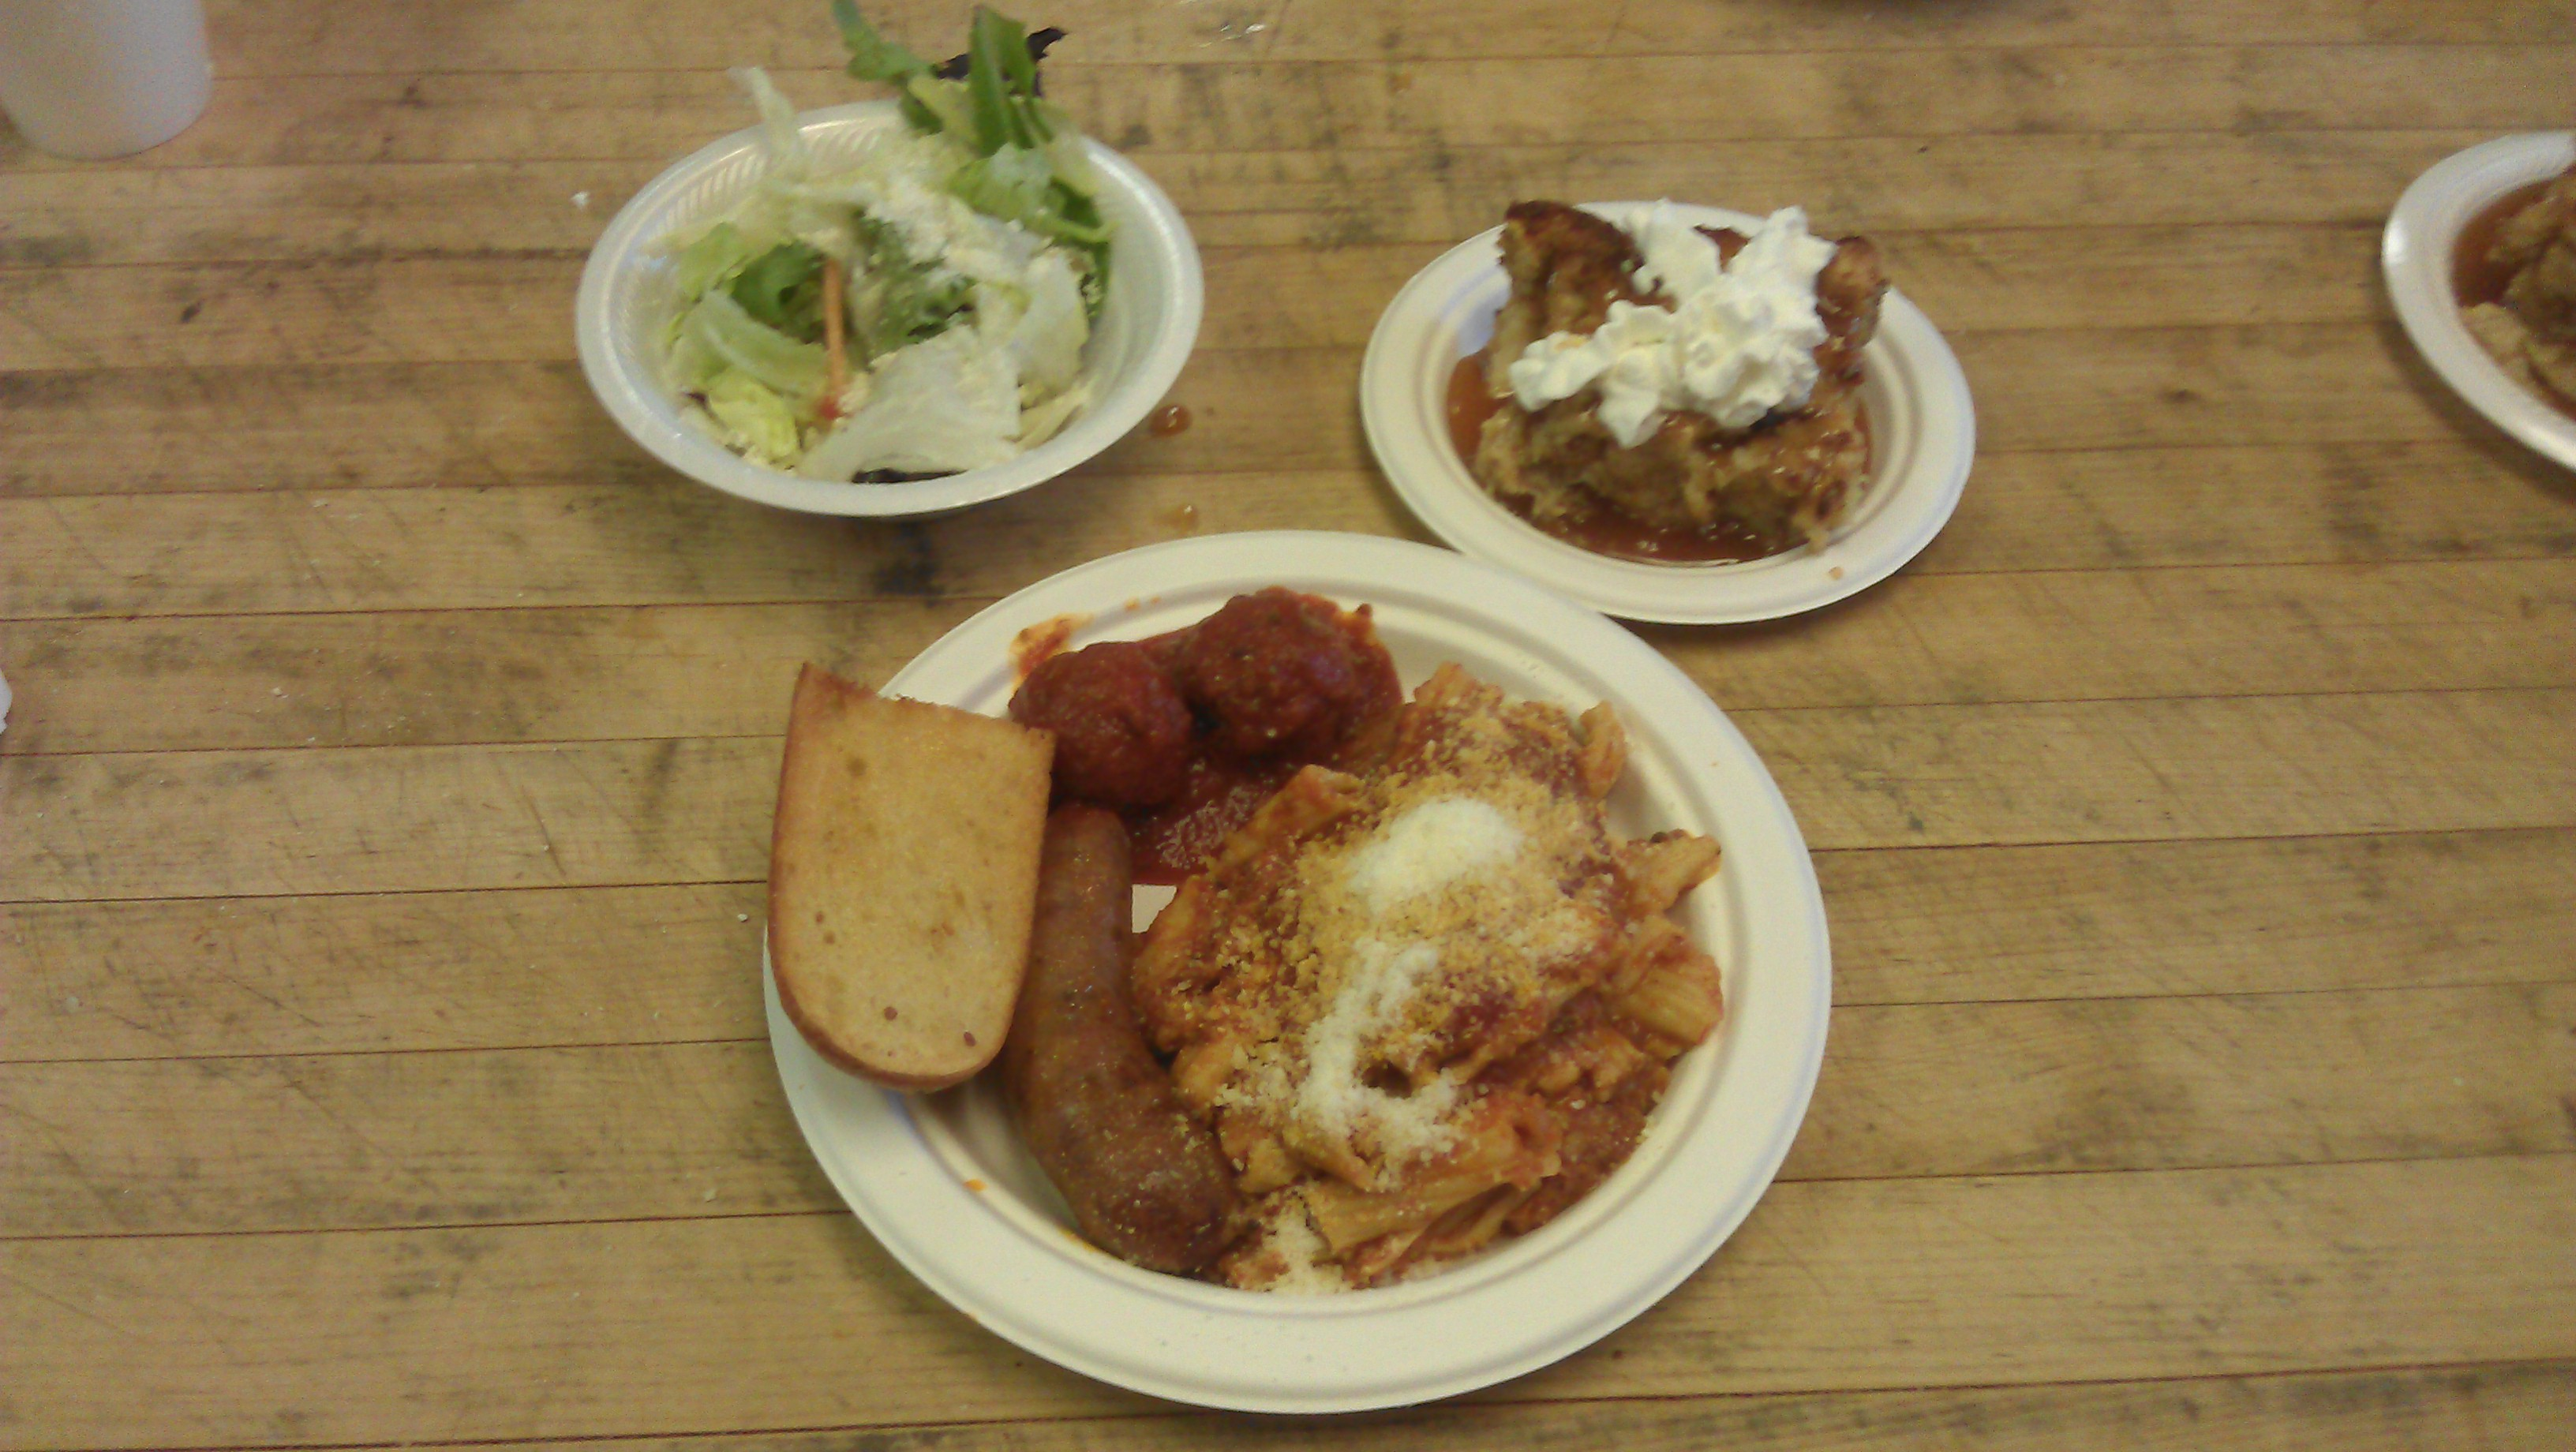 LOH 2014-02-11 Baked pasta sausage meatballs garlic bread salad bread pudding